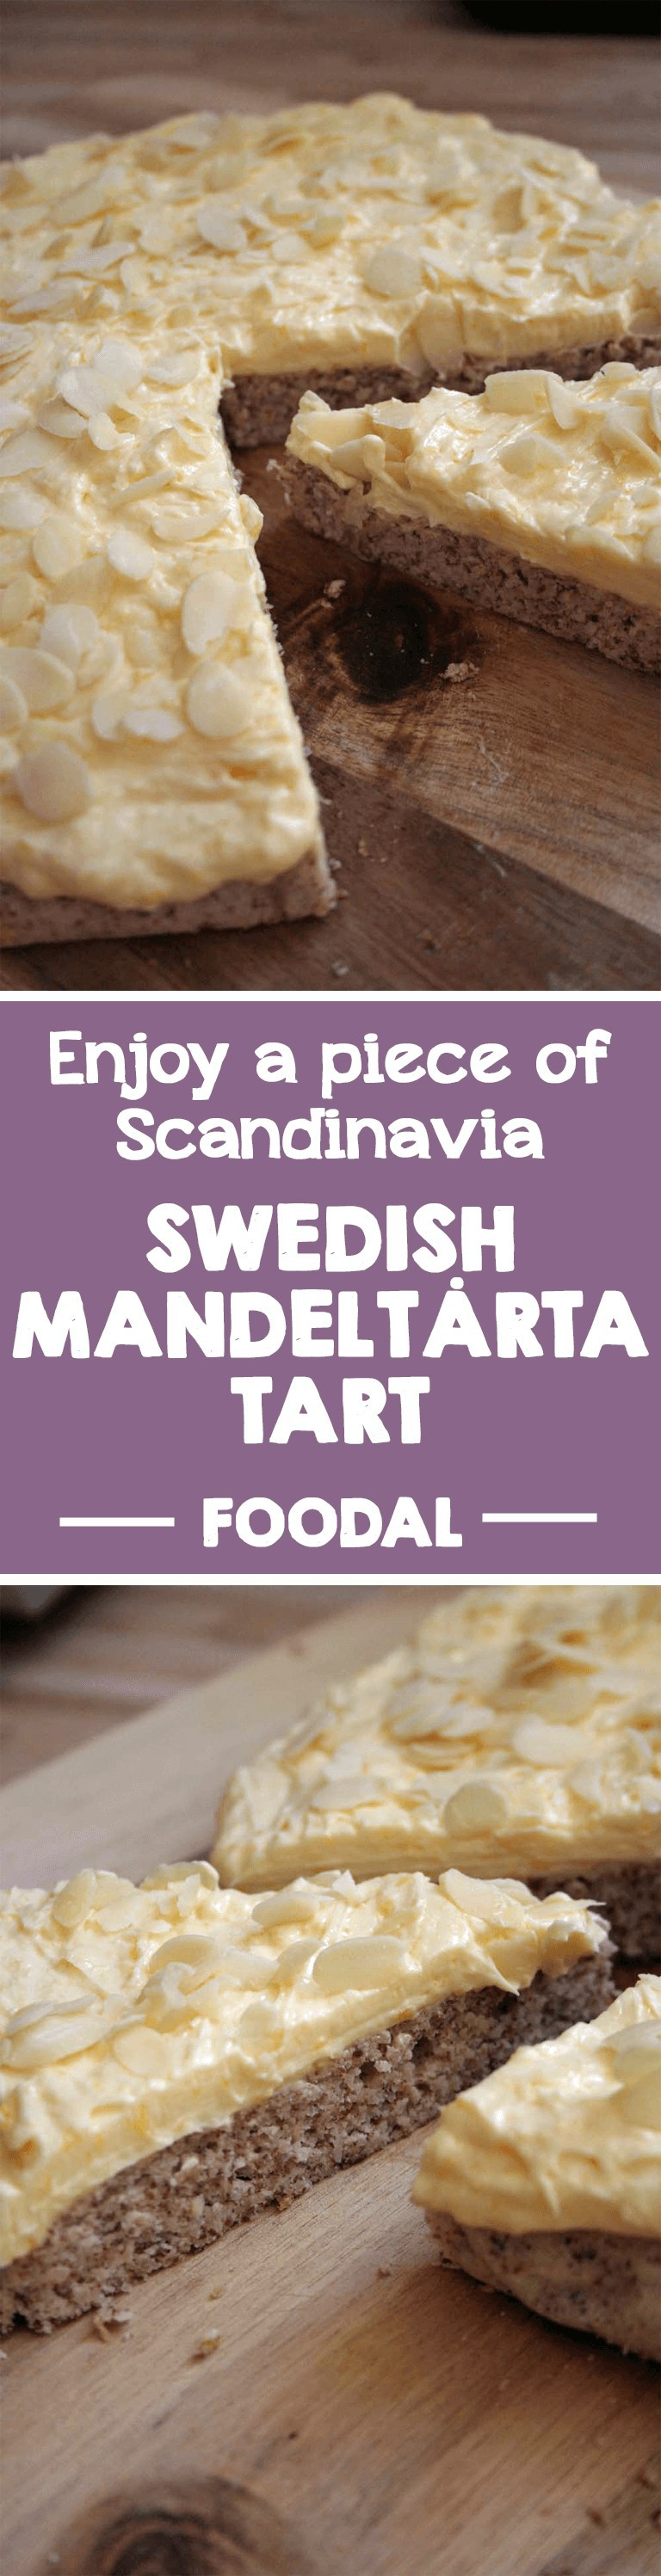 Discover a European dessert delicacy with Foodal. This Scandinavian almond tart will seduce you with its rich and delicious egg-cream and a nutty, gluten-free base. Read on for the taste of Sweden! Smaklig måltid! https://foodal.com/recipes/desserts/enjoy-a-piece-of-scandinavia-swedish-mandeltarta/